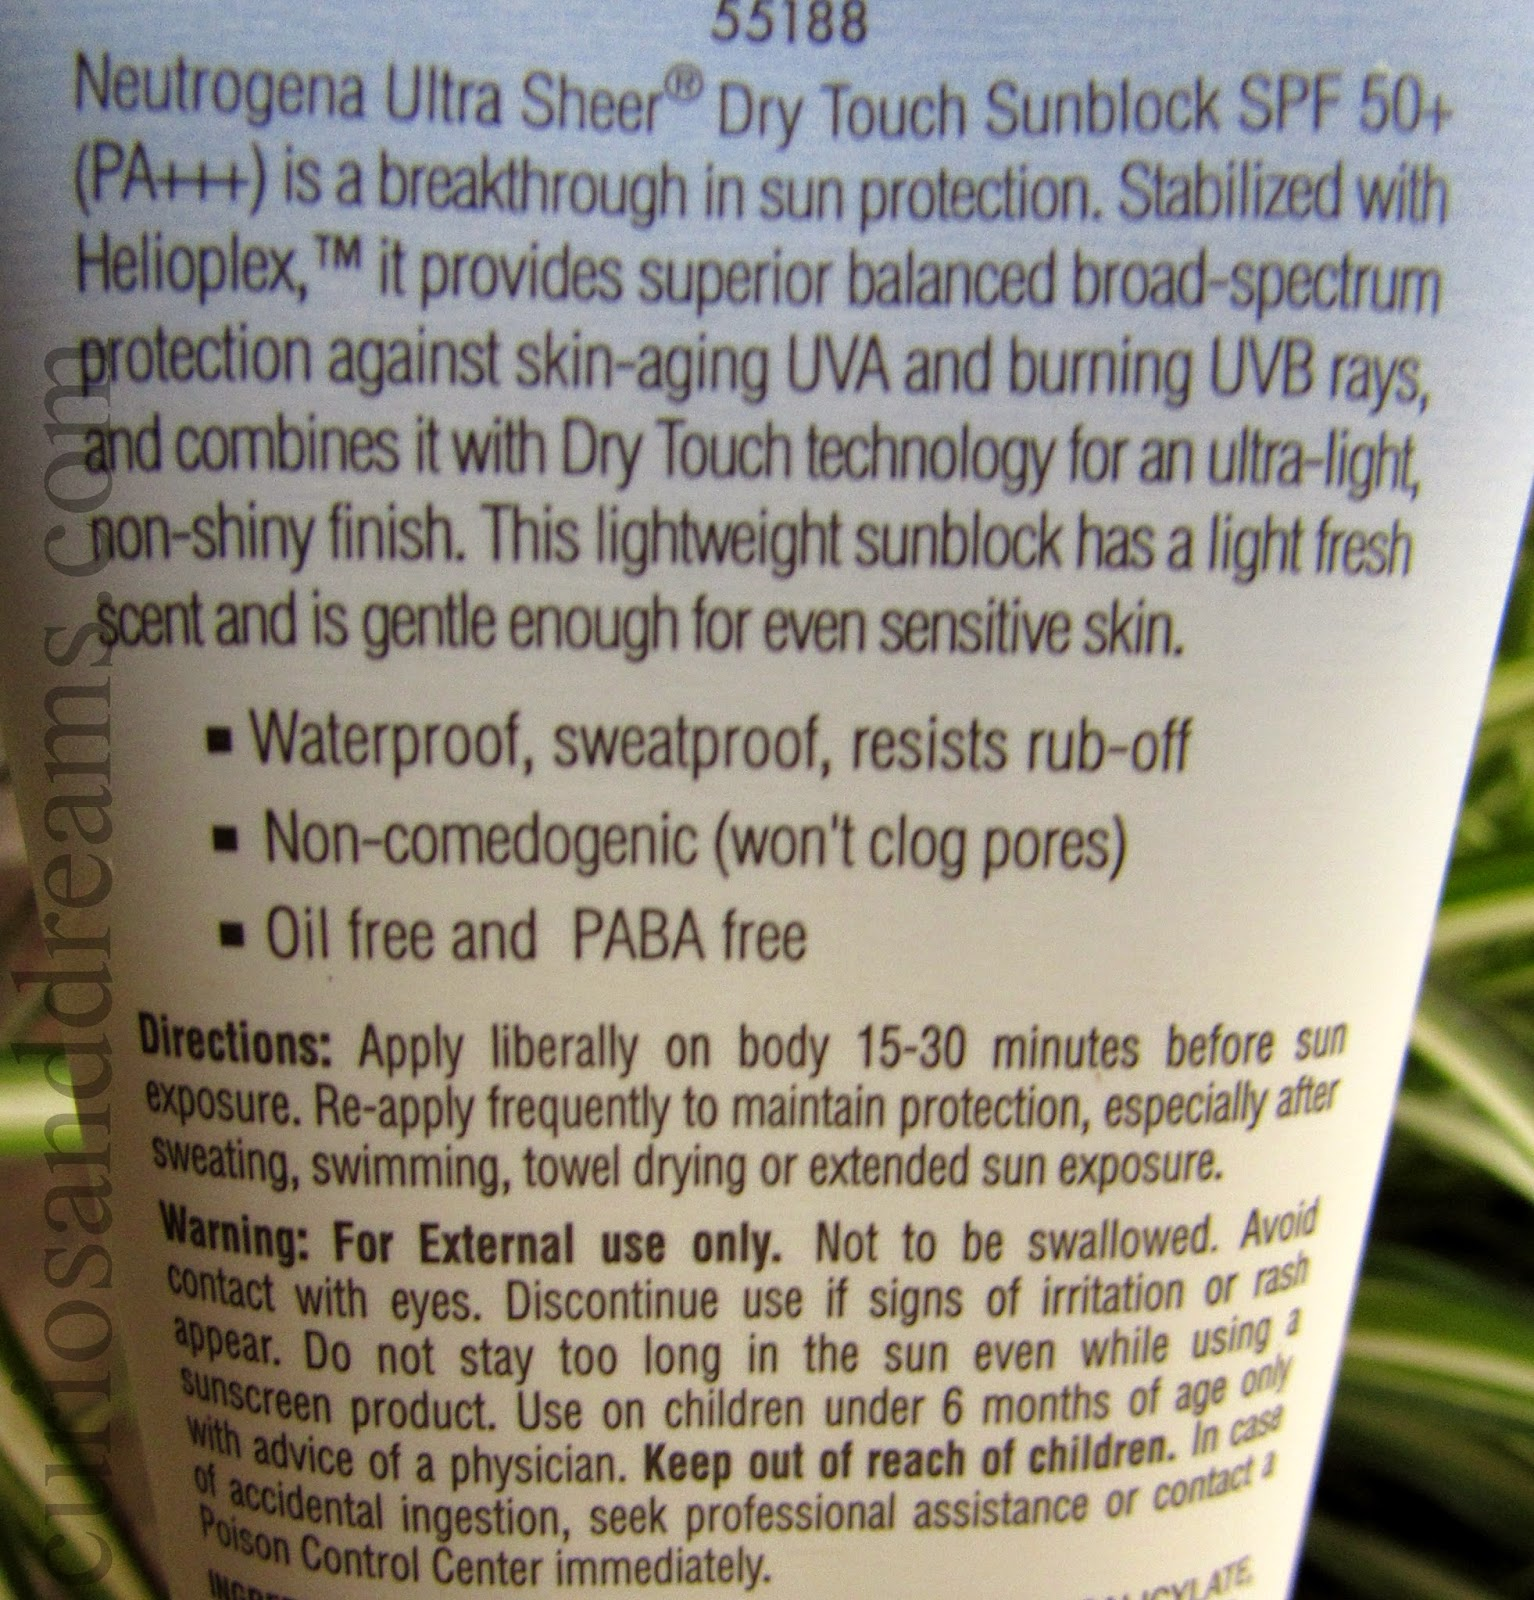 Neutrogena Ultra Sheer Dry-Touch Sunblock SPF 50+ Review, Neutrogena Ultra Sheer Dry-Touch Review